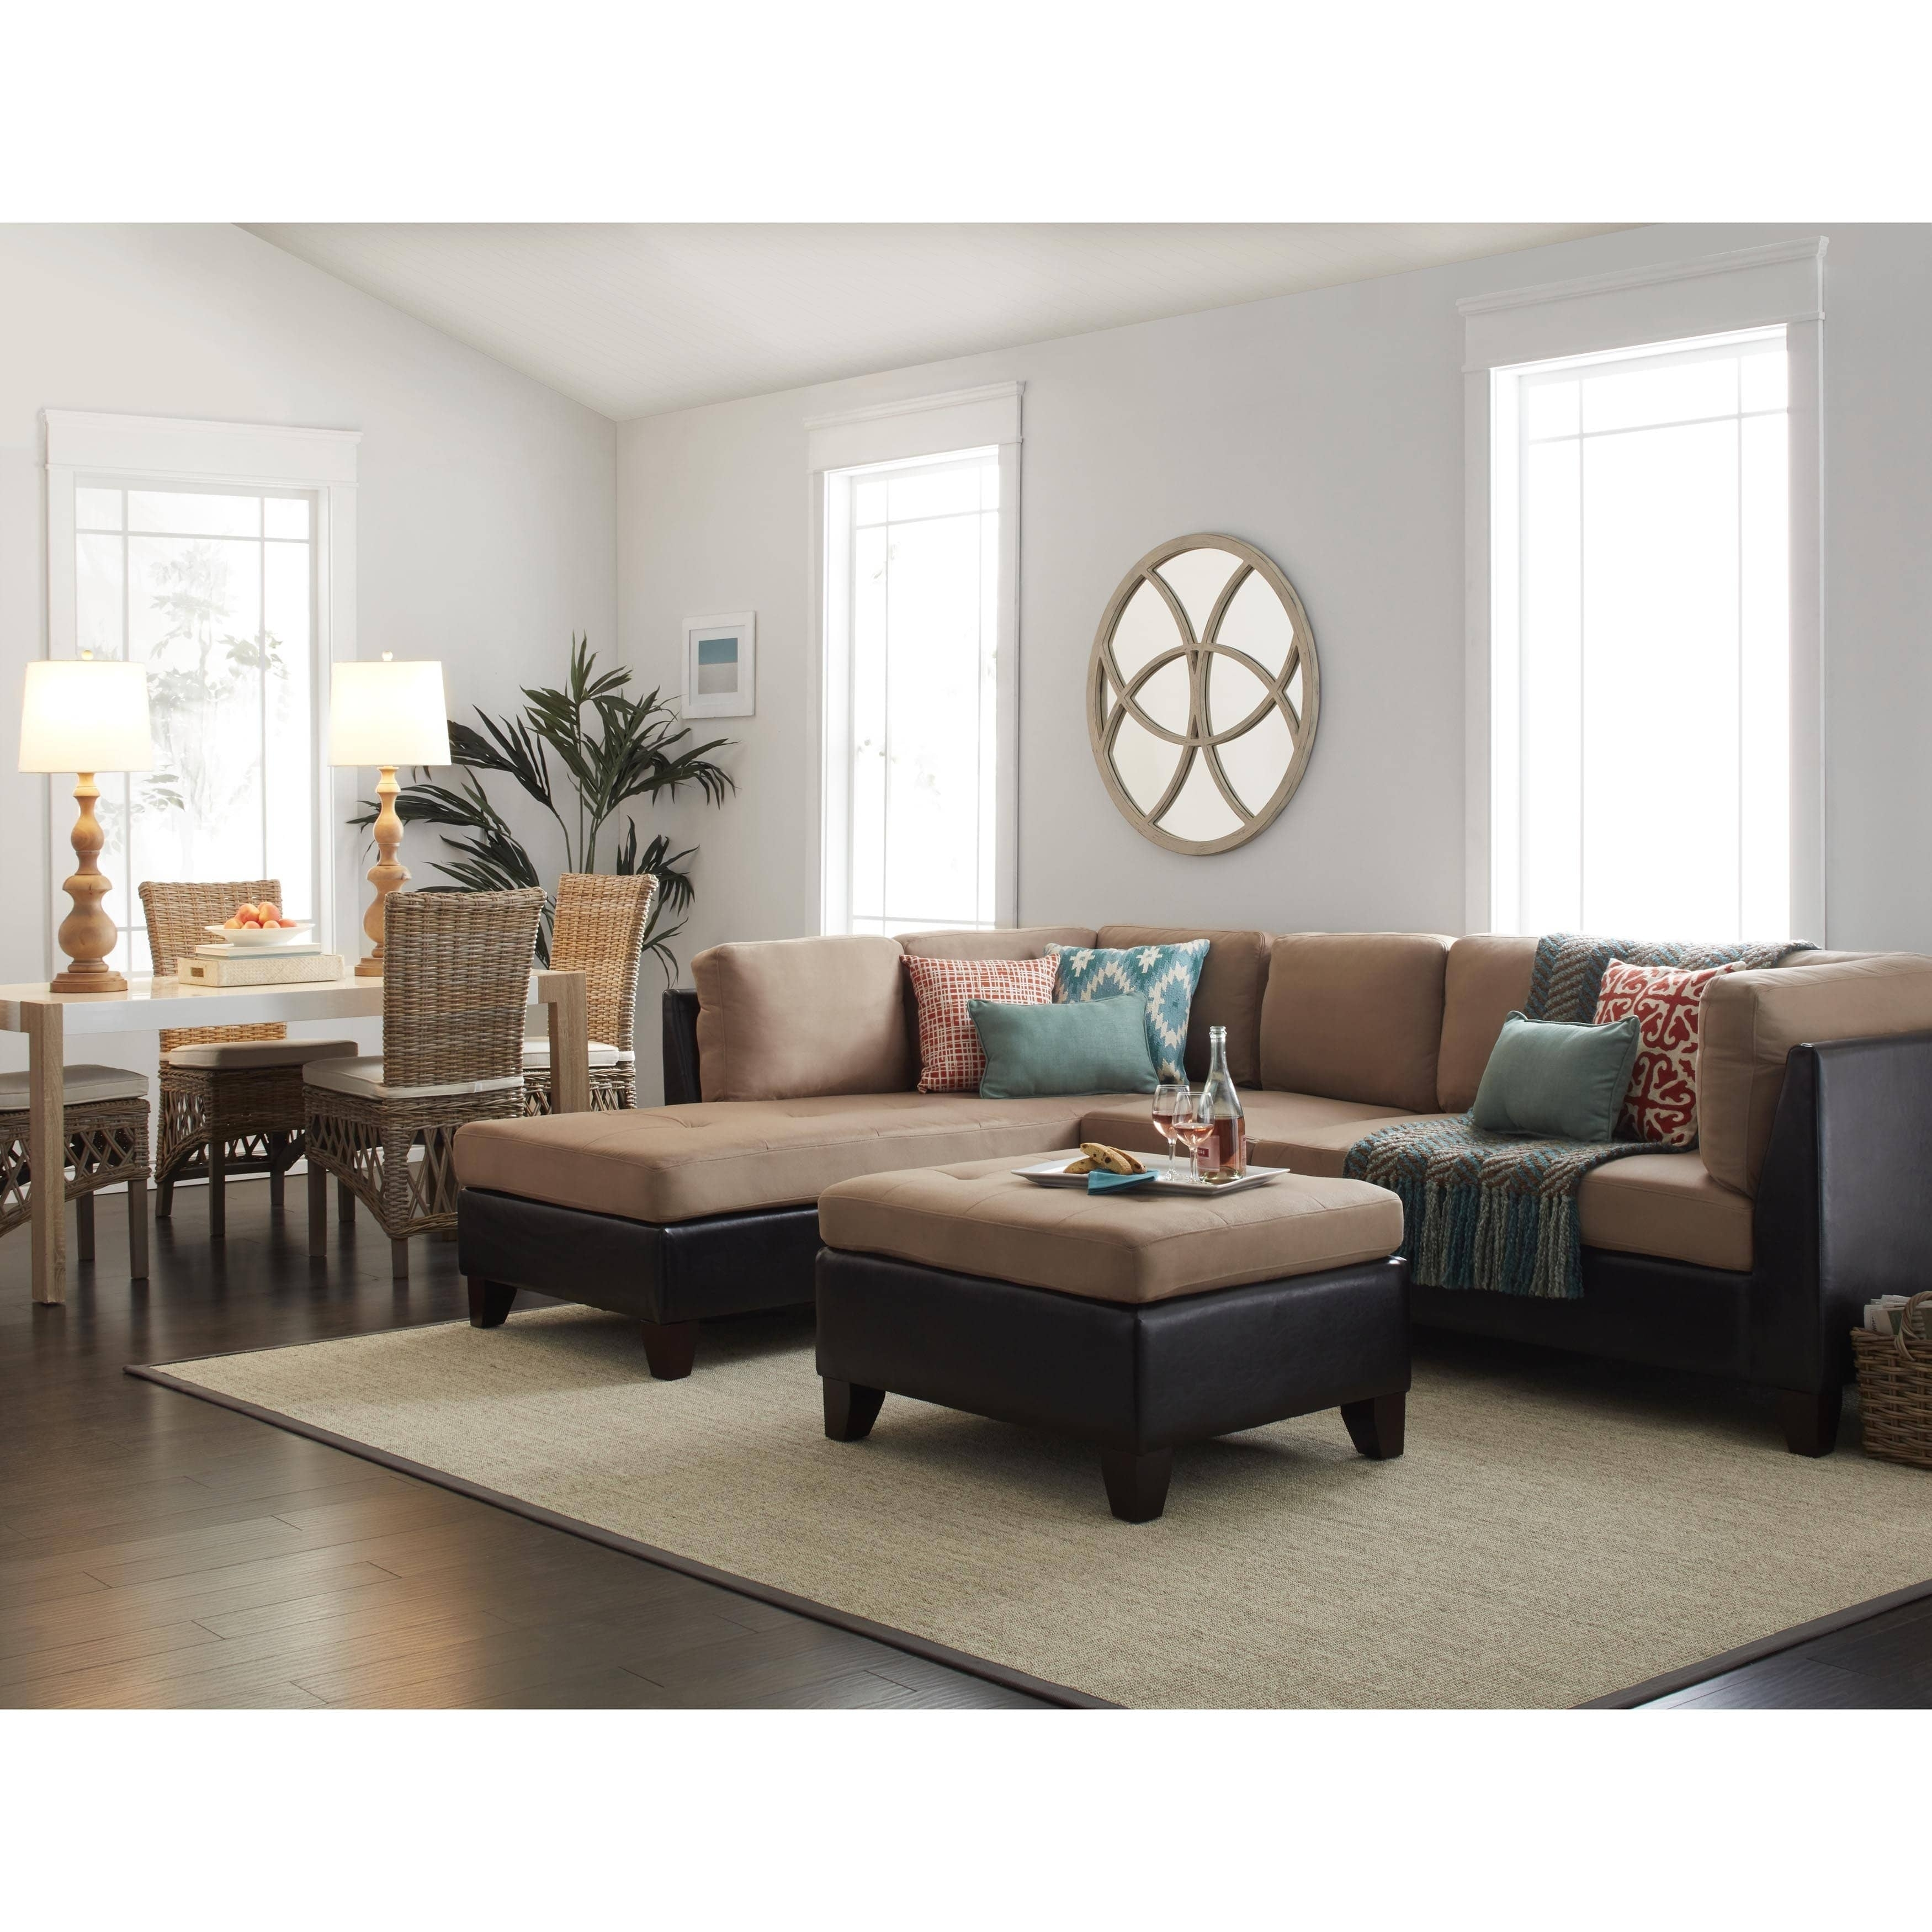 Abbyson Charlotte Beige Sectional Sofa And Ottoman - Free Shipping for Charlotte Sectional Sofas (Image 4 of 10)